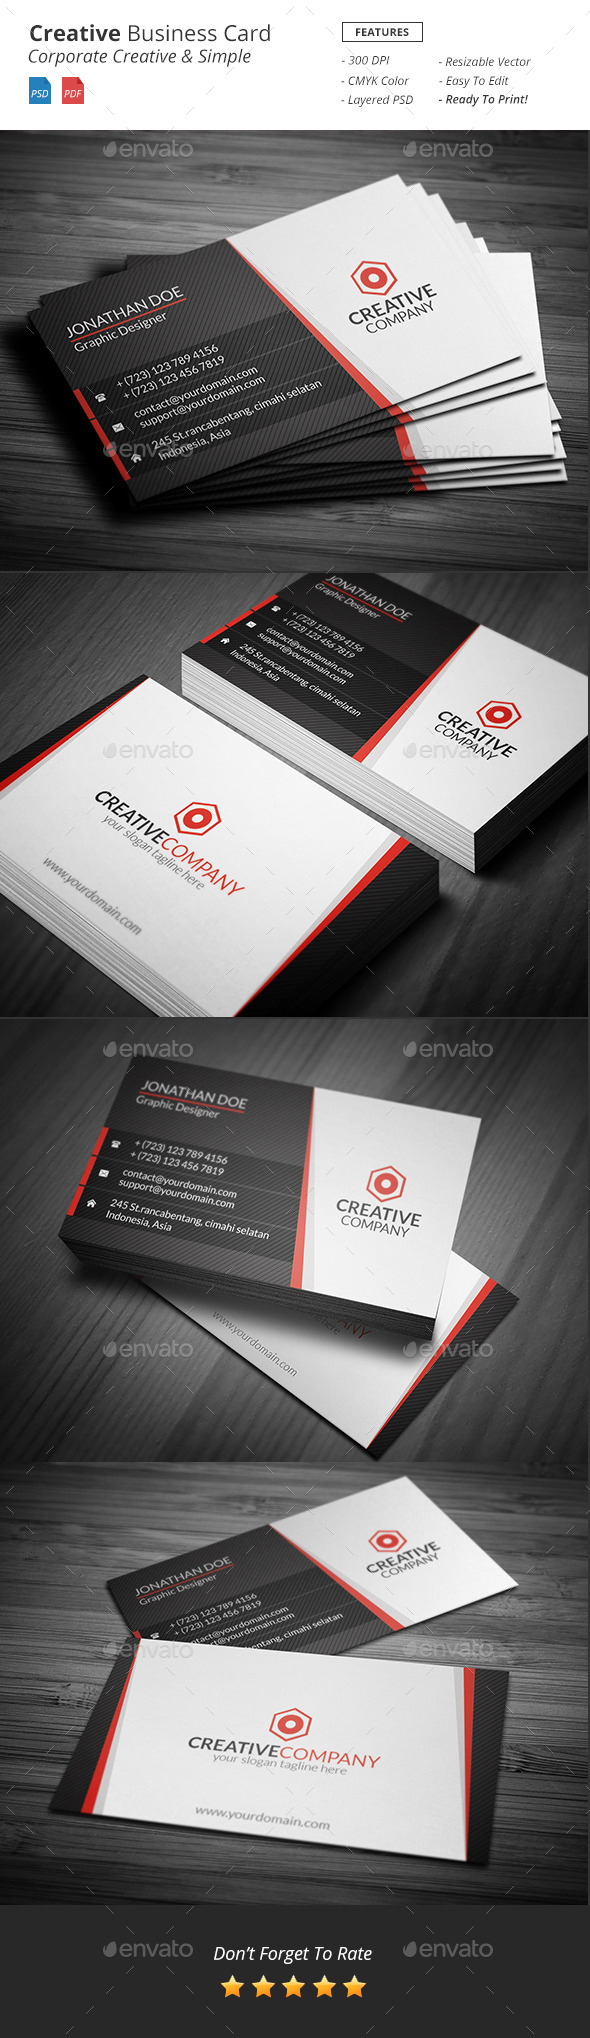 GraphicRiver Creative Business Card 11473970